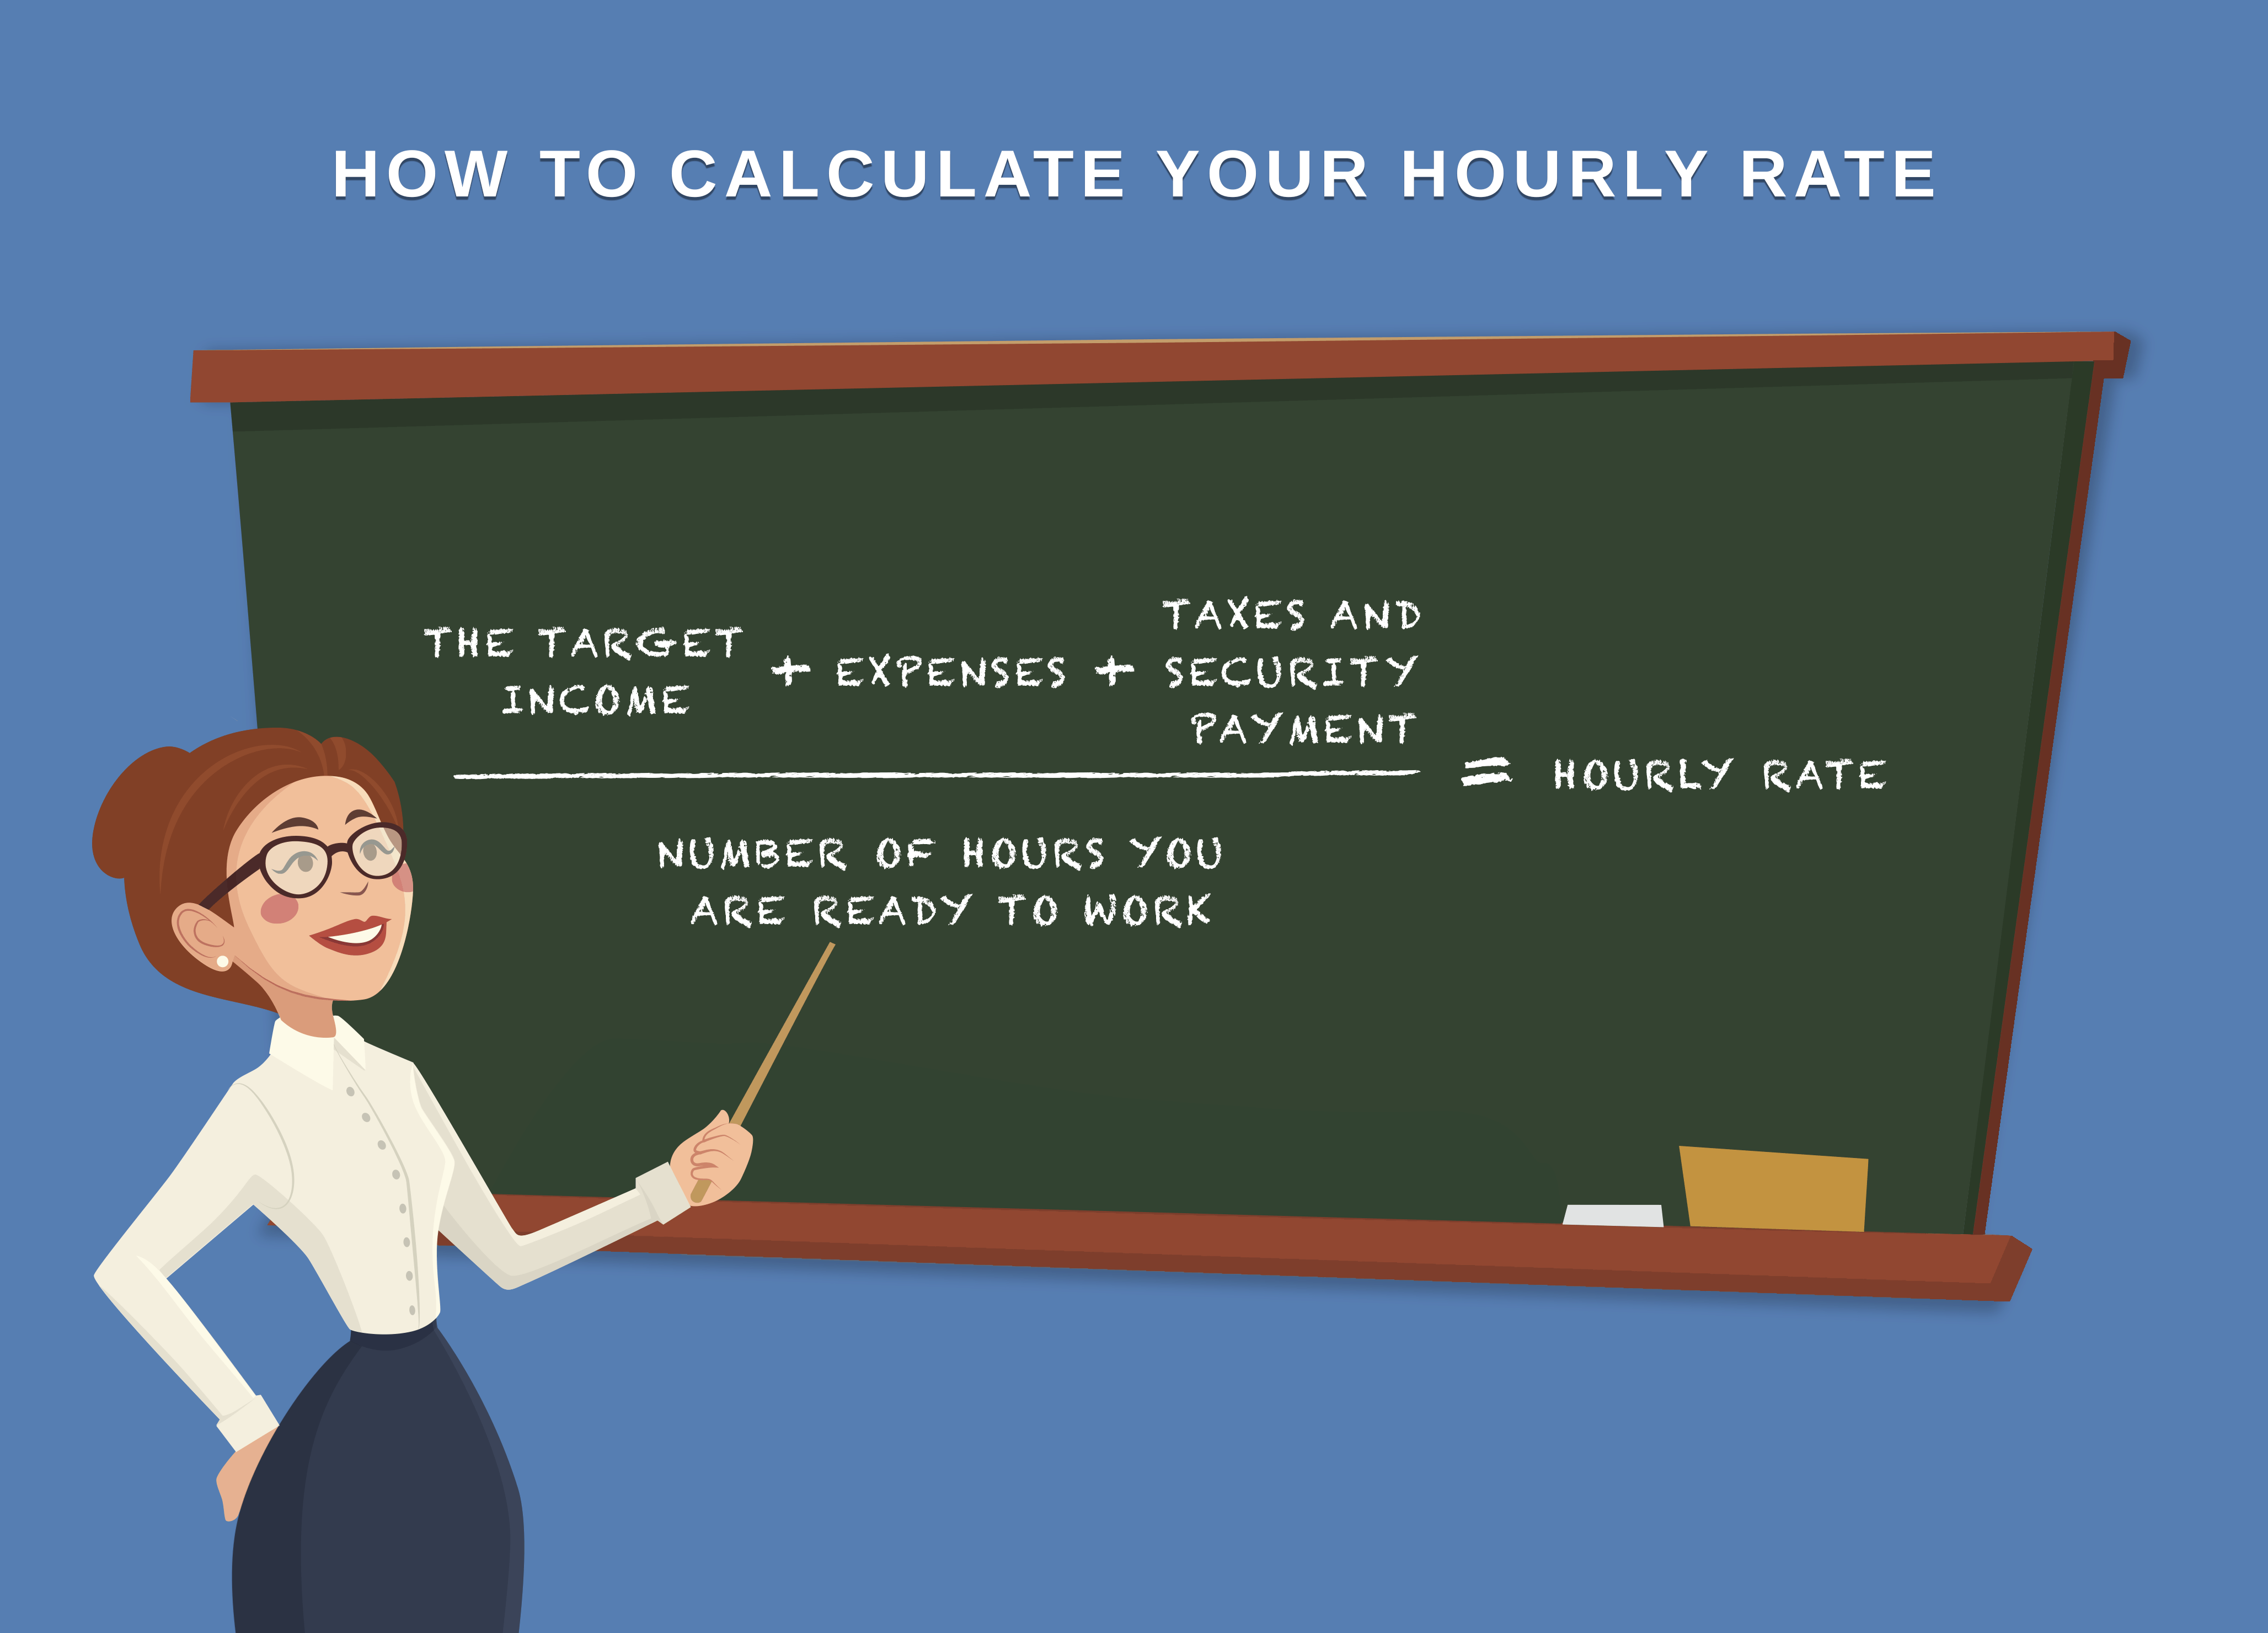 How to Calculate Your Hourly Rate